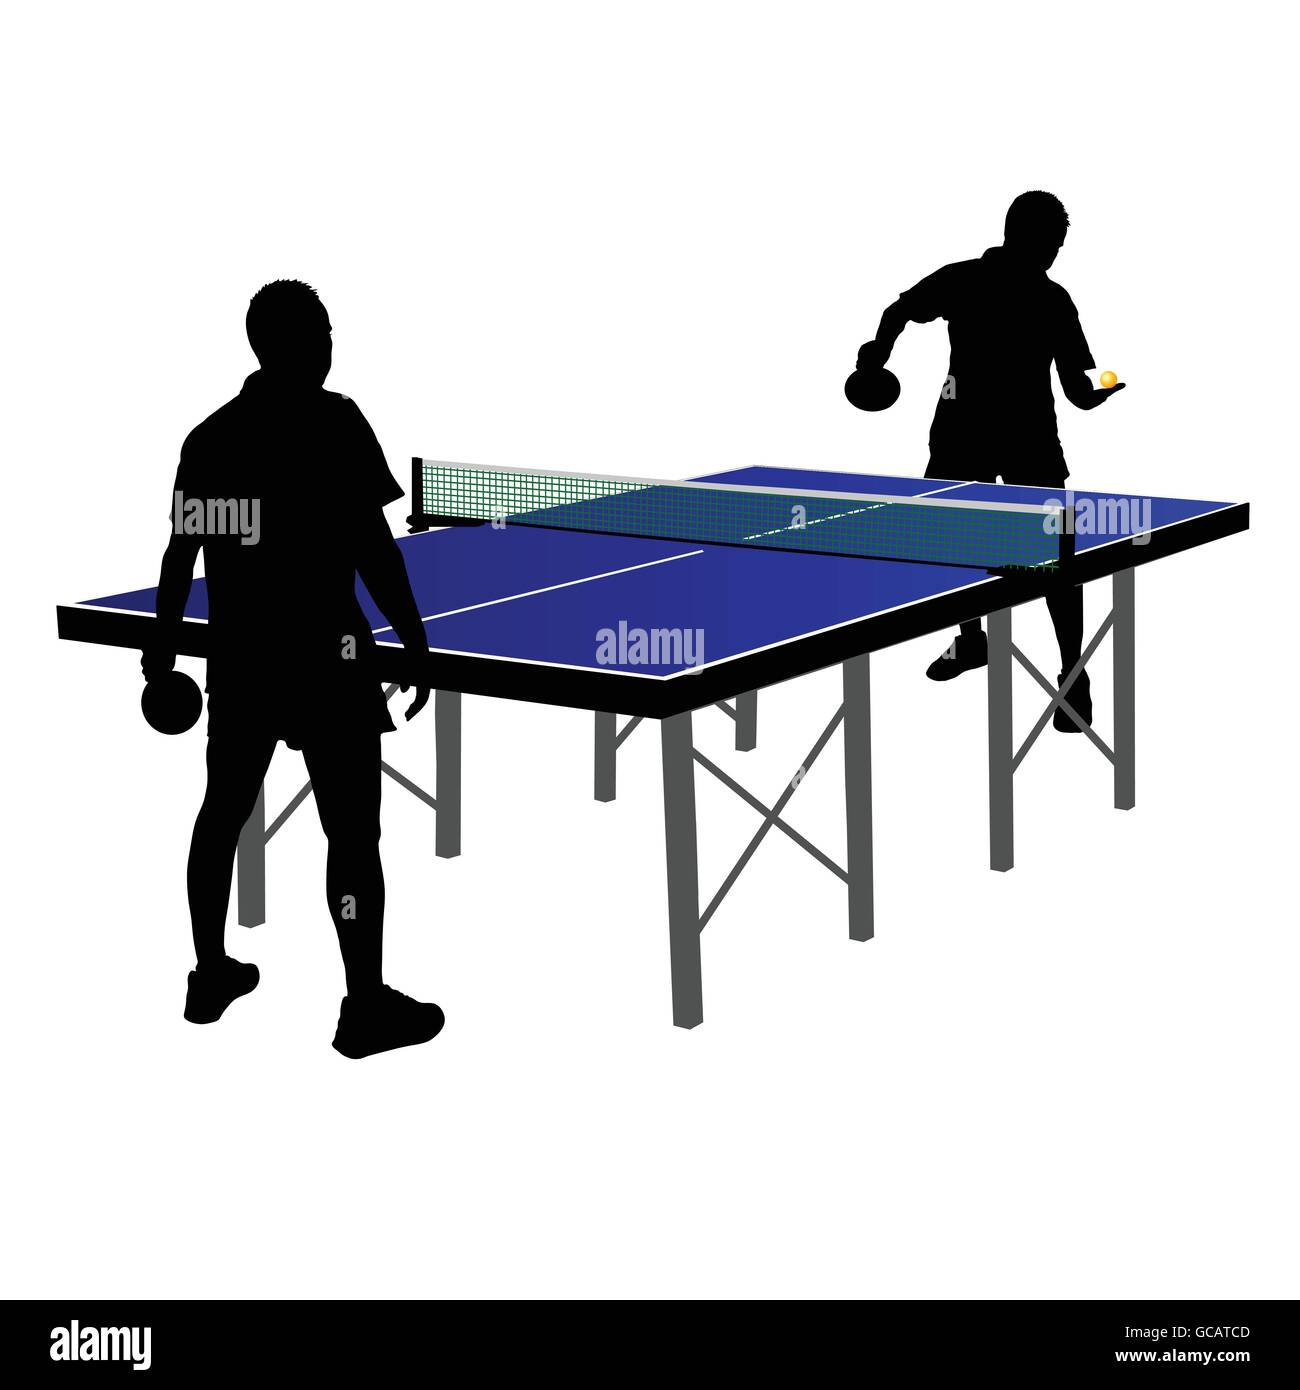 Deux hommes à jouer au tennis de table vector illustration Illustration de Vecteur